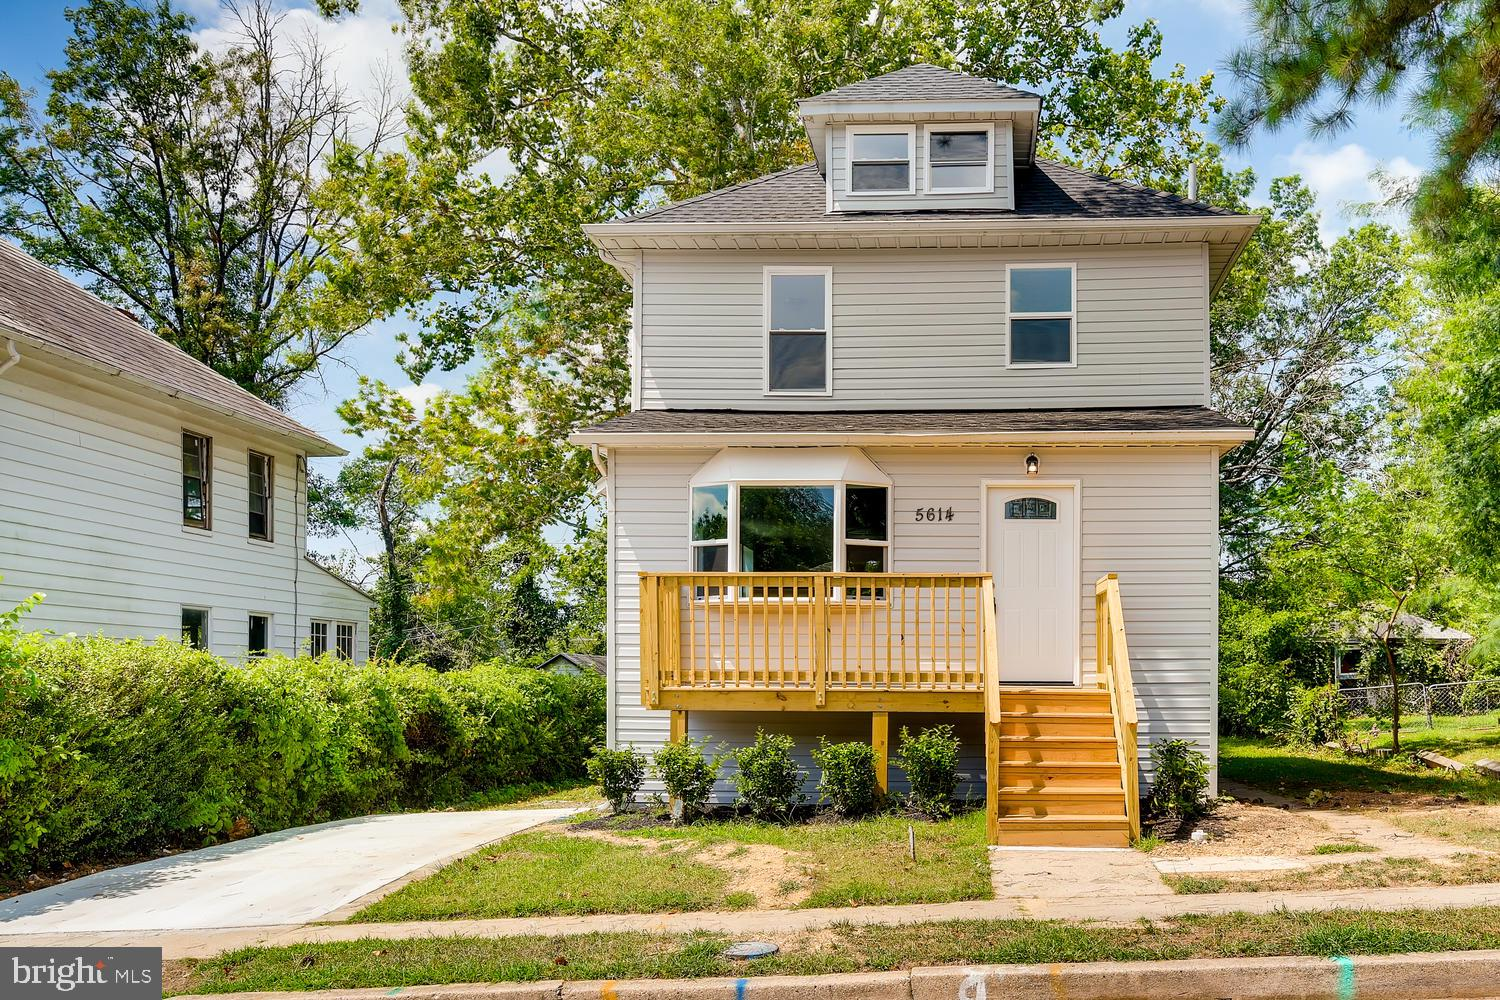 5614 PLYMOUTH ROAD, BALTIMORE, MD 21214